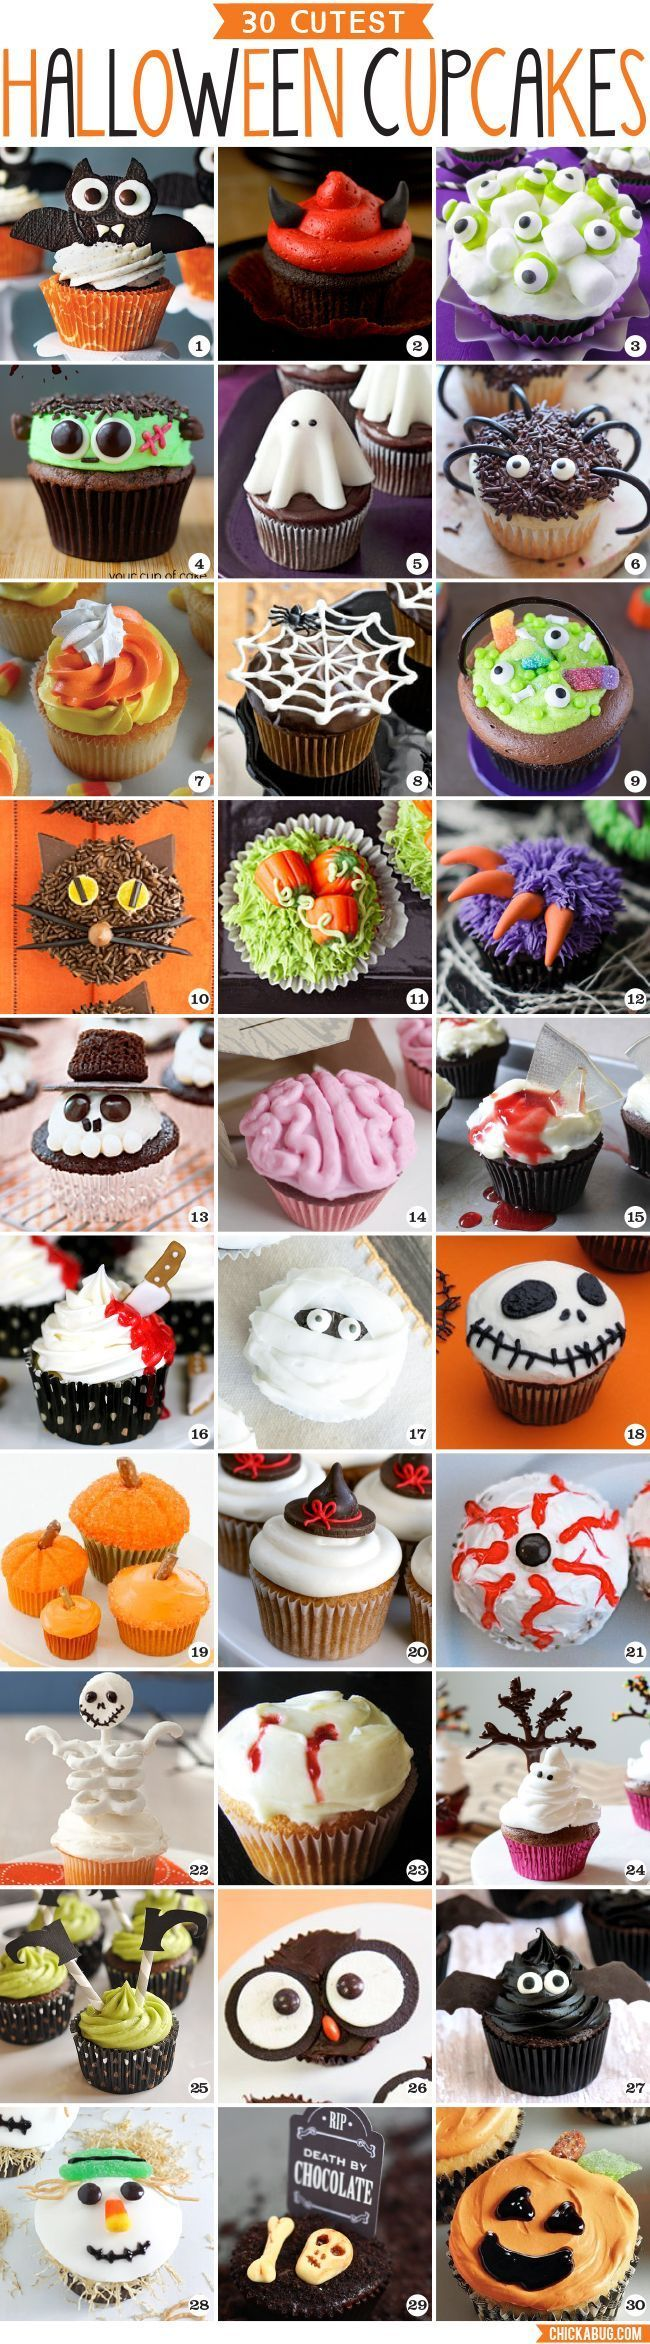 30 cutest halloween cupcakes